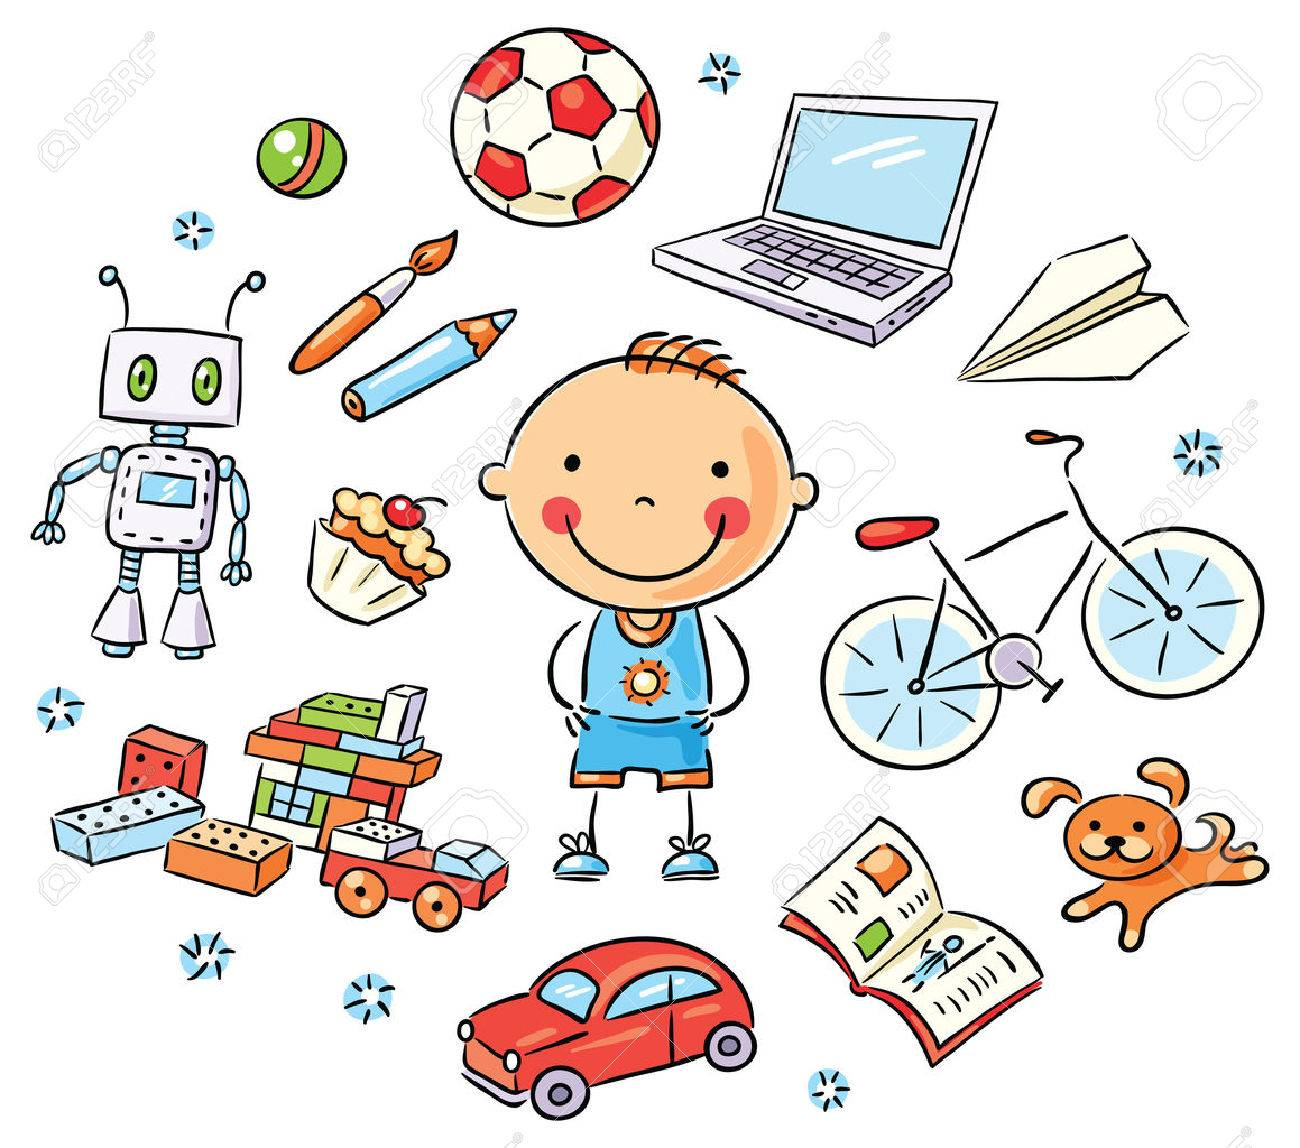 hobbies cartoon images stock pictures royalty hobbies hobbies cartoon boy and his interests set toys books sweets computer